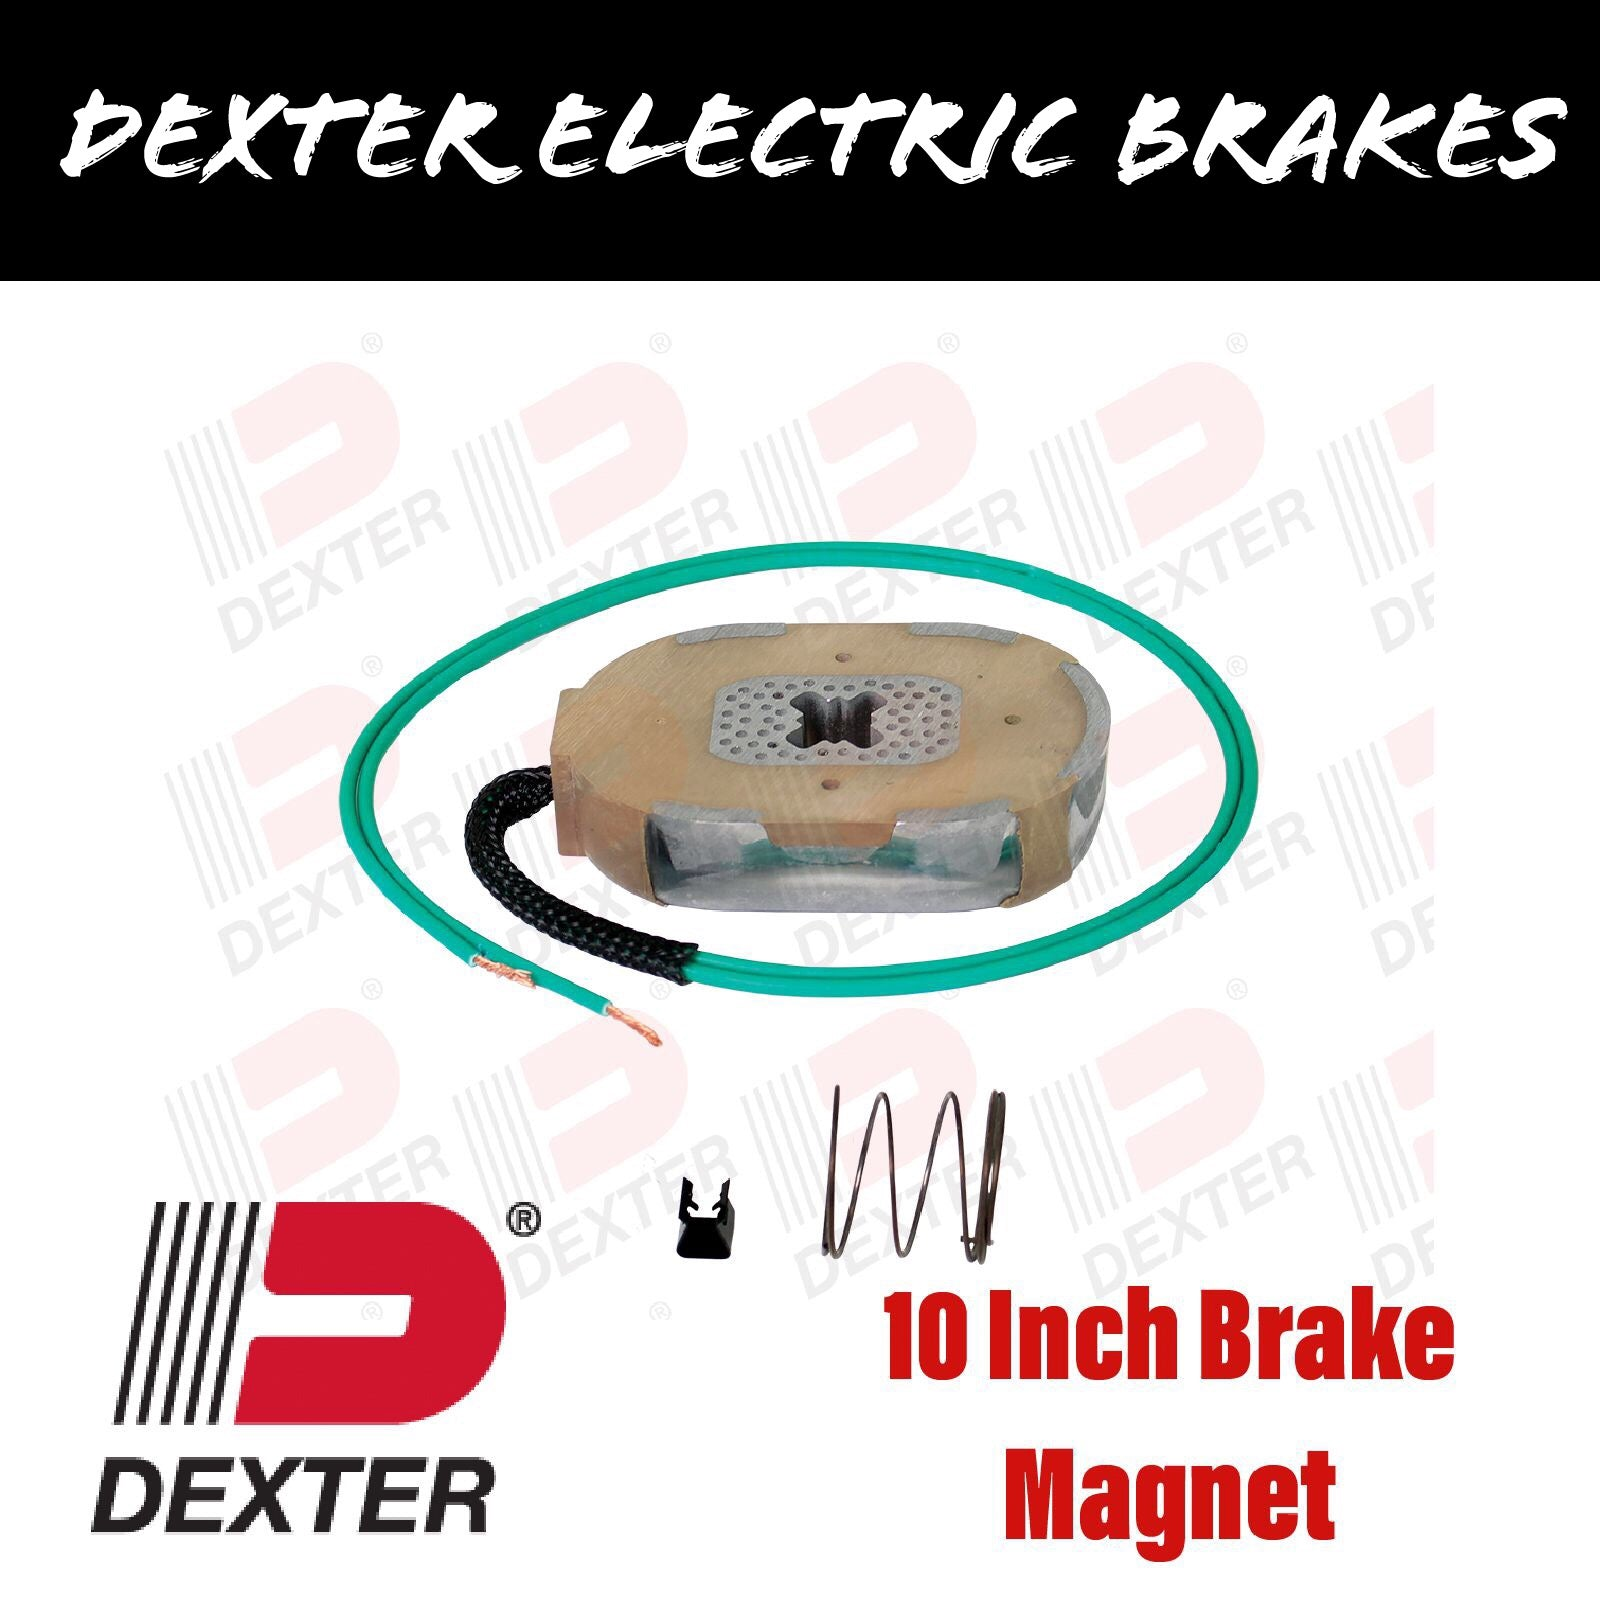 DEXTER 10 INCH ELECTRIC BRAKE MAGNET